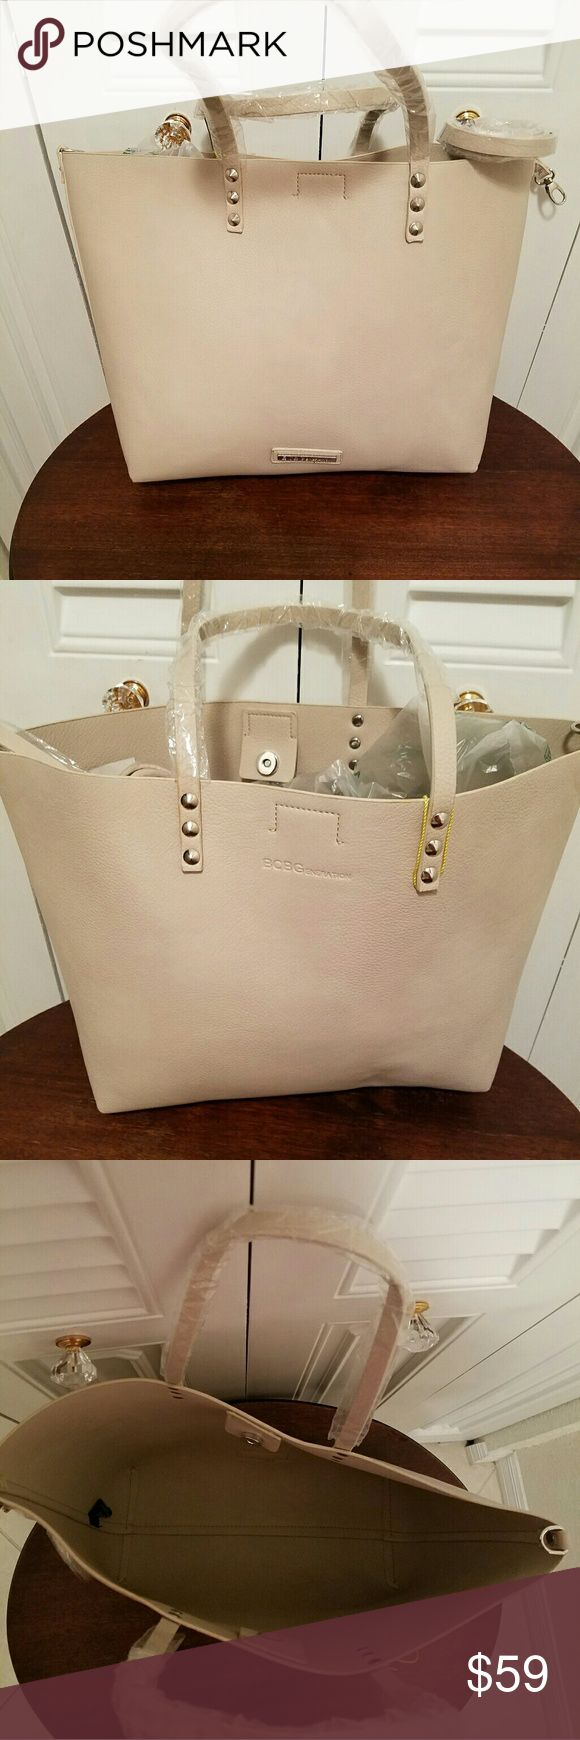 BRAND NEW BCBGENERATION  beige tote handbag Beautiful tote bag with attachable shoulder strap . BCBGeneration Bags Shoulder Bags